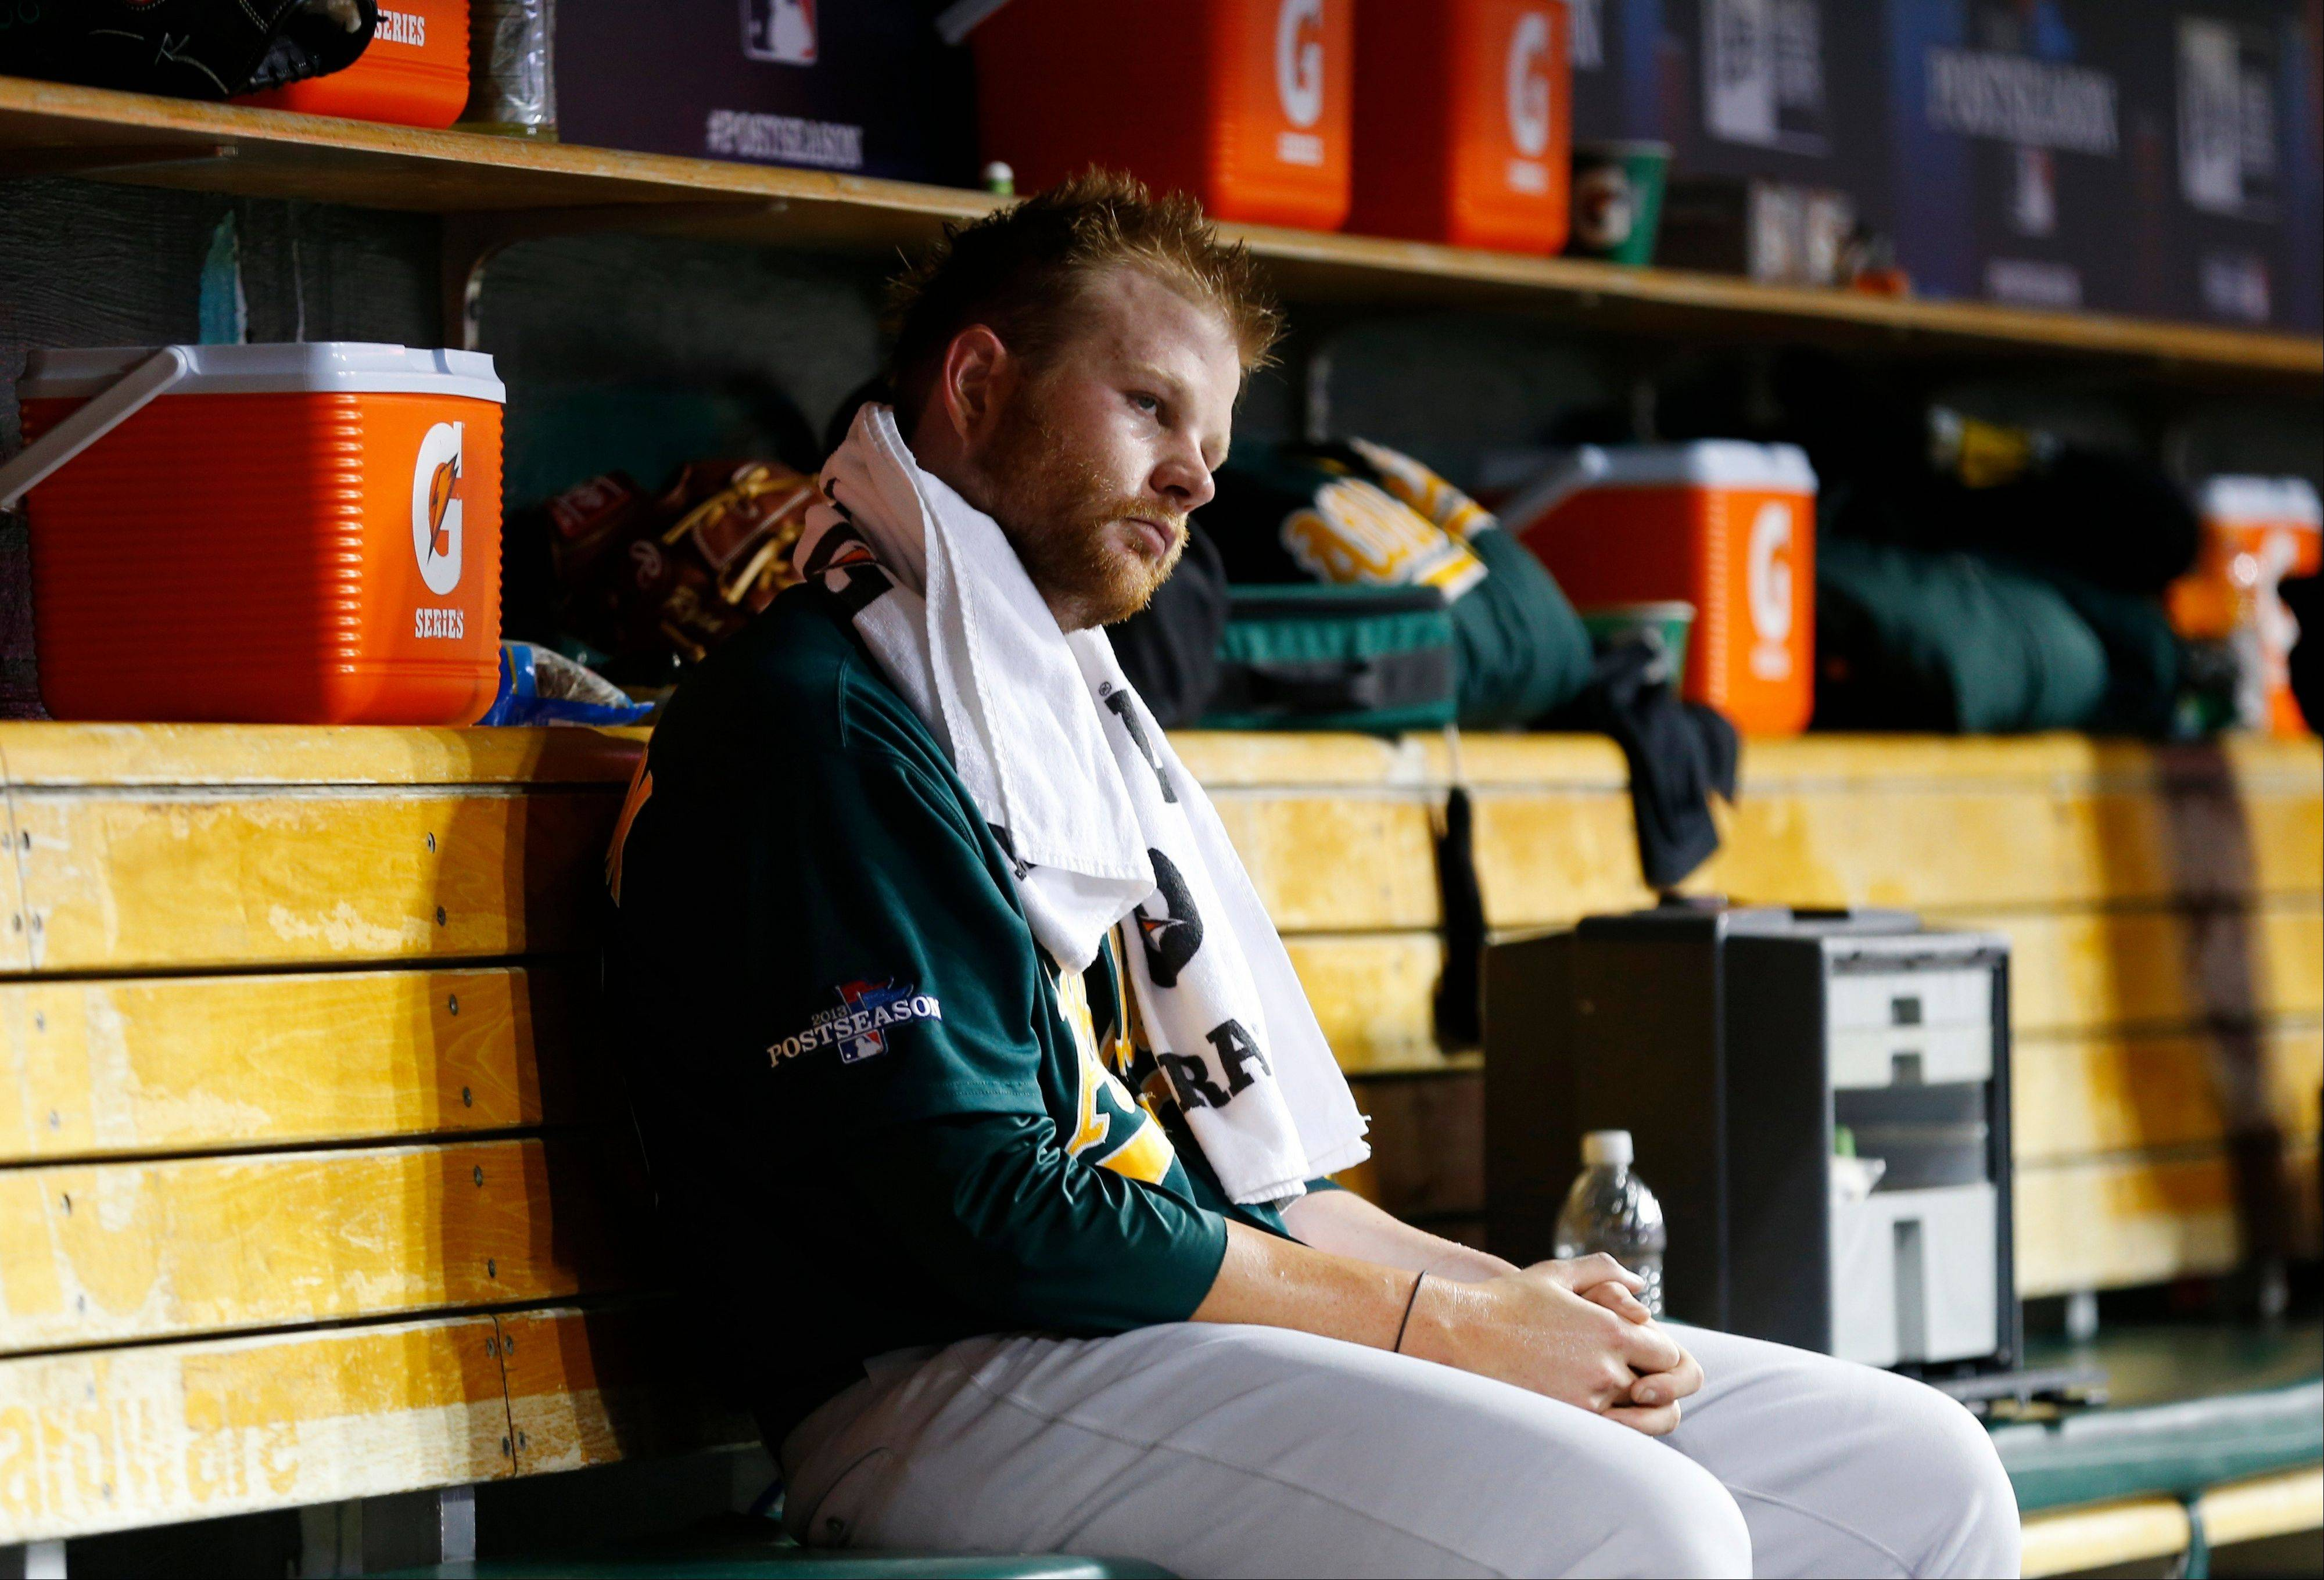 Oakland Athletics relief pitcher Brett Anderson sits in the dugout during the ninth inning of Tuesday's game.